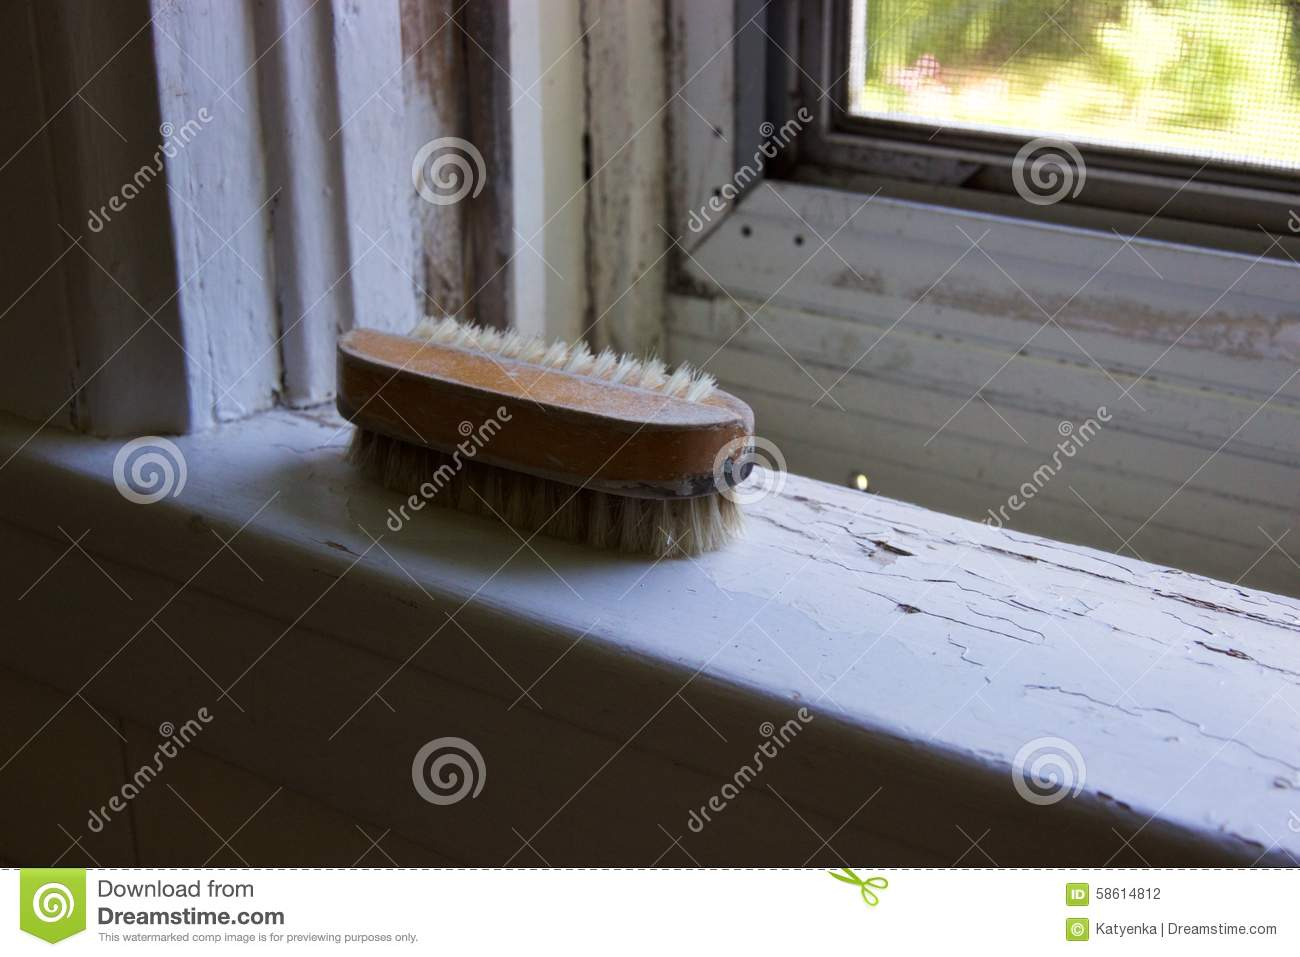 Old Scrub Brush Royalty Free Stock Images - Image: 13062529